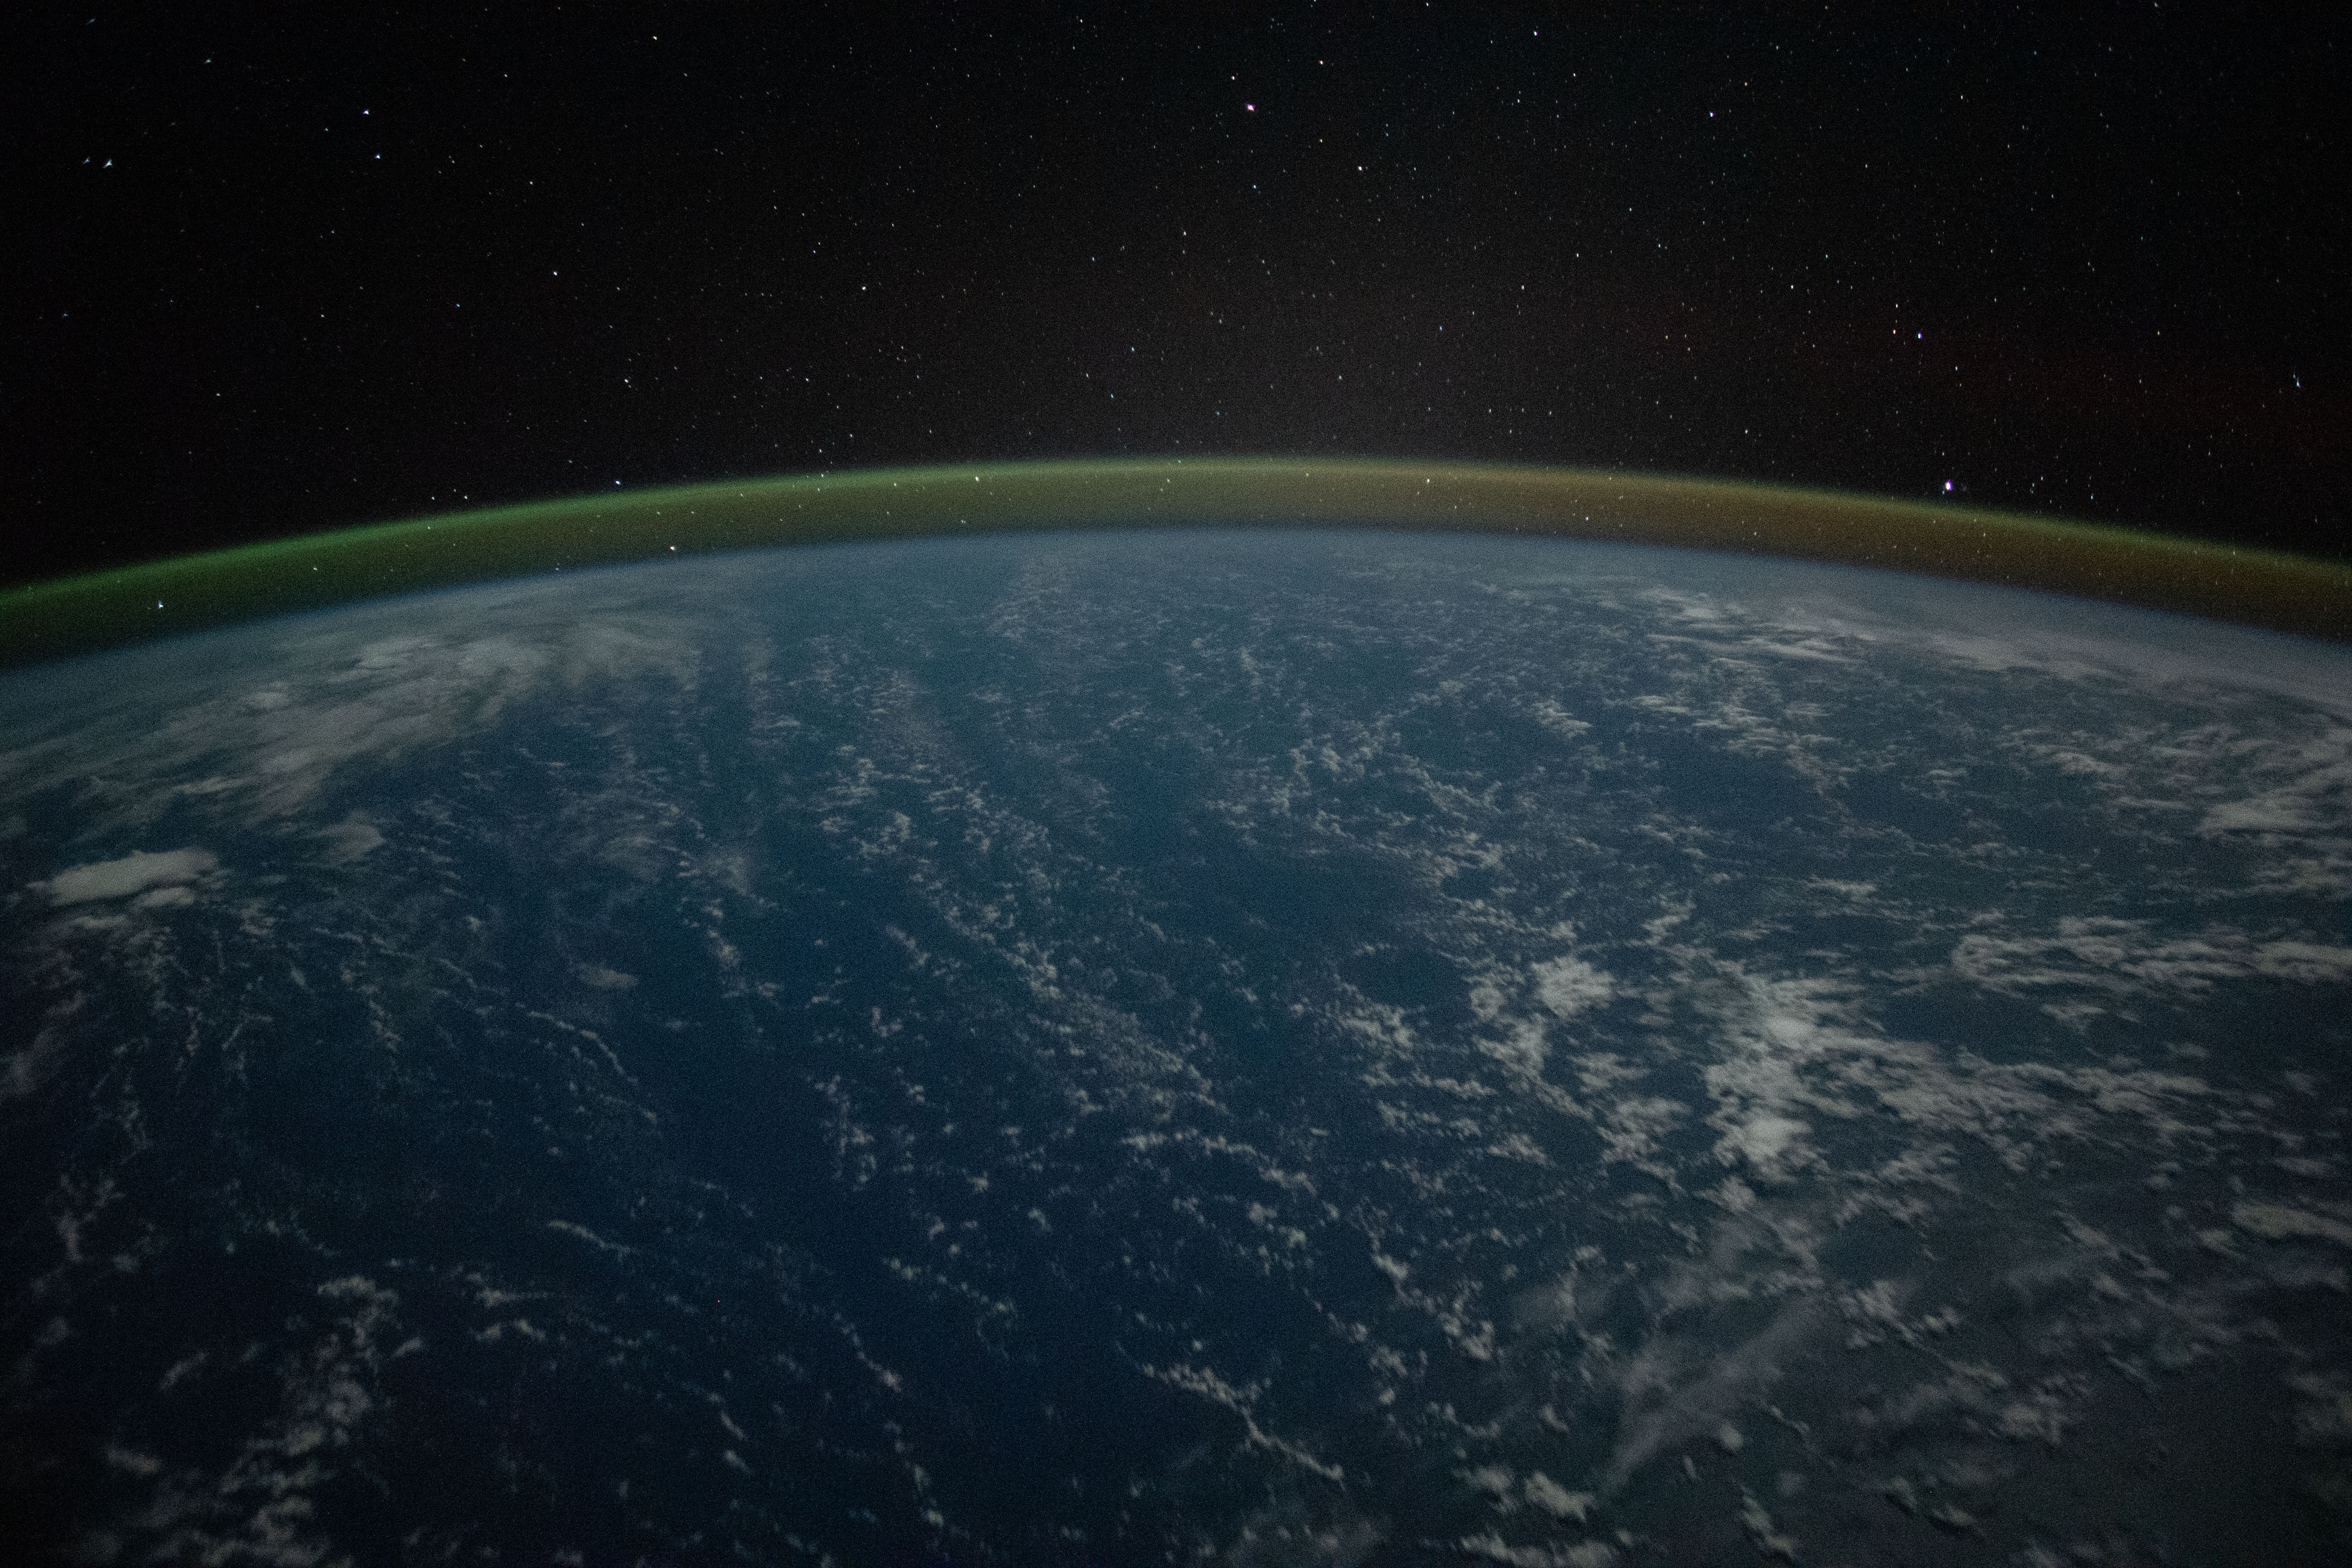 Seeing the Earth's Glow From Space